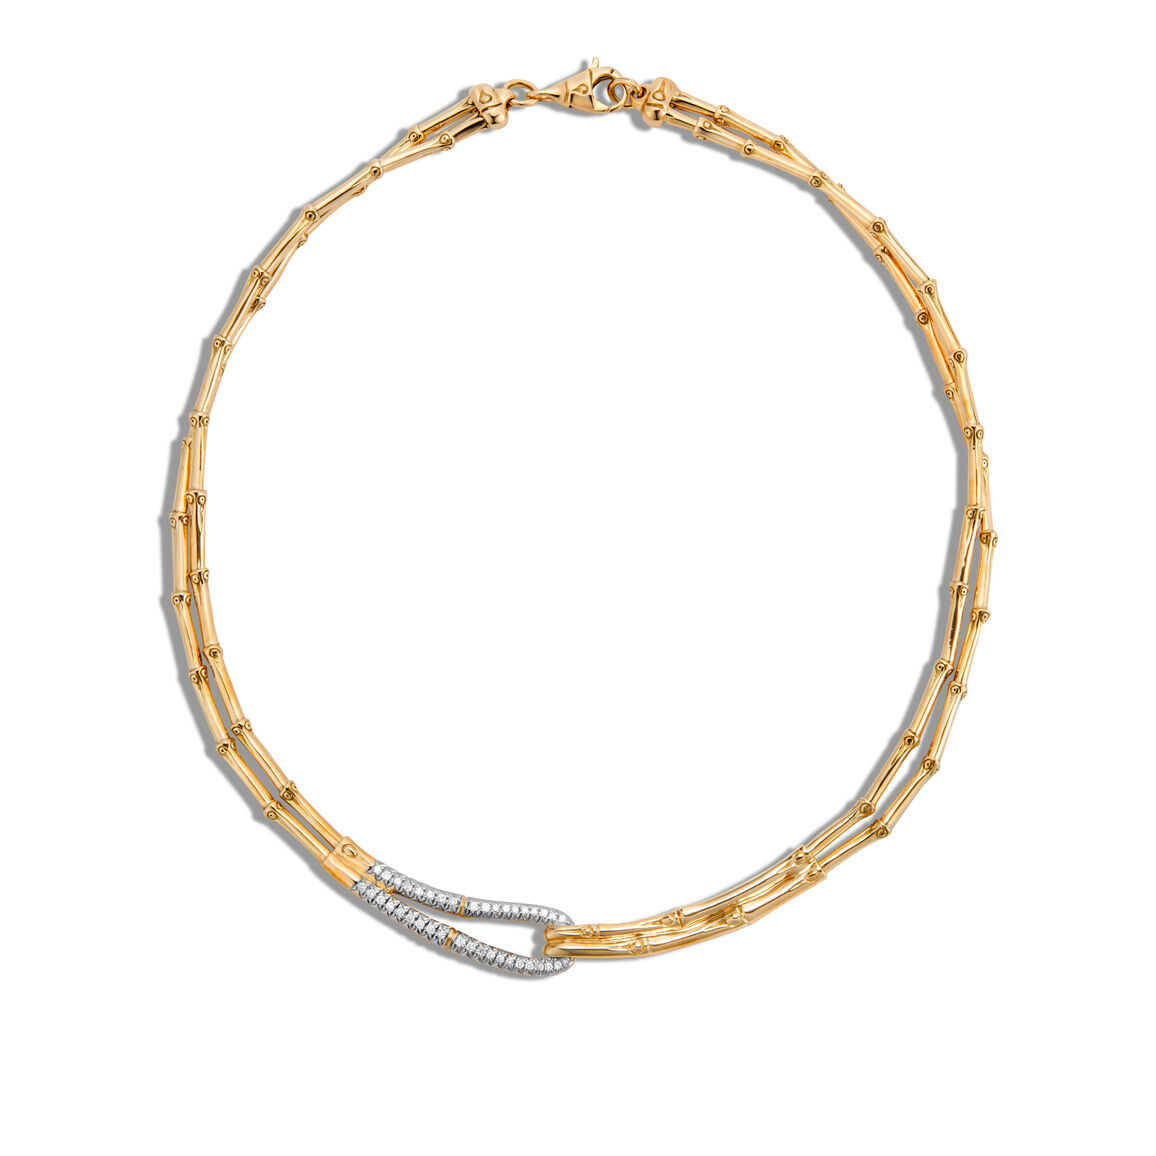 Bamboo 5MM Hook Necklace in 18K Gold with Diamonds